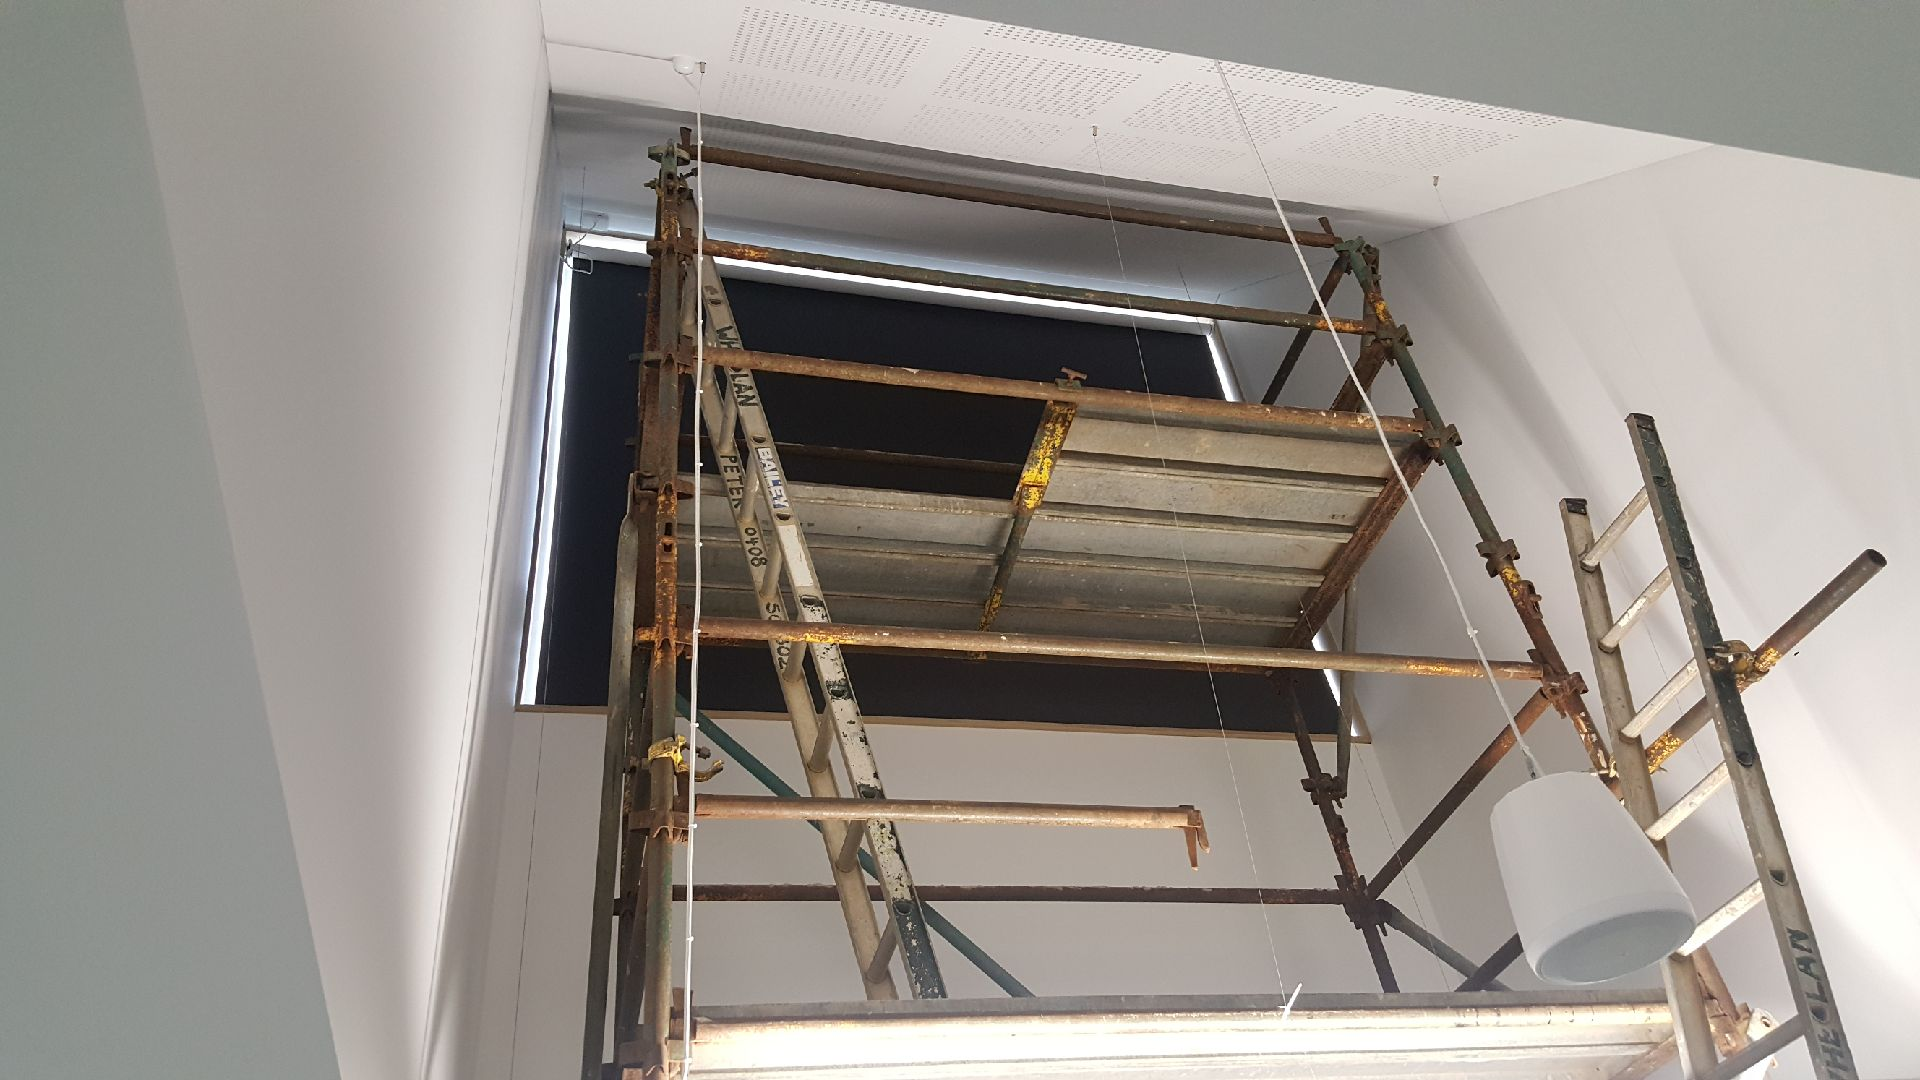 blind glass drilling venetian blindsinstalling size on traverse of full ready rods dummiesinstalling how drapery vertical hang track curtains walls bracket out center for installing that to over door rod made curtain brackets aluminum plaster doors window van sliding with stick and blinds without in